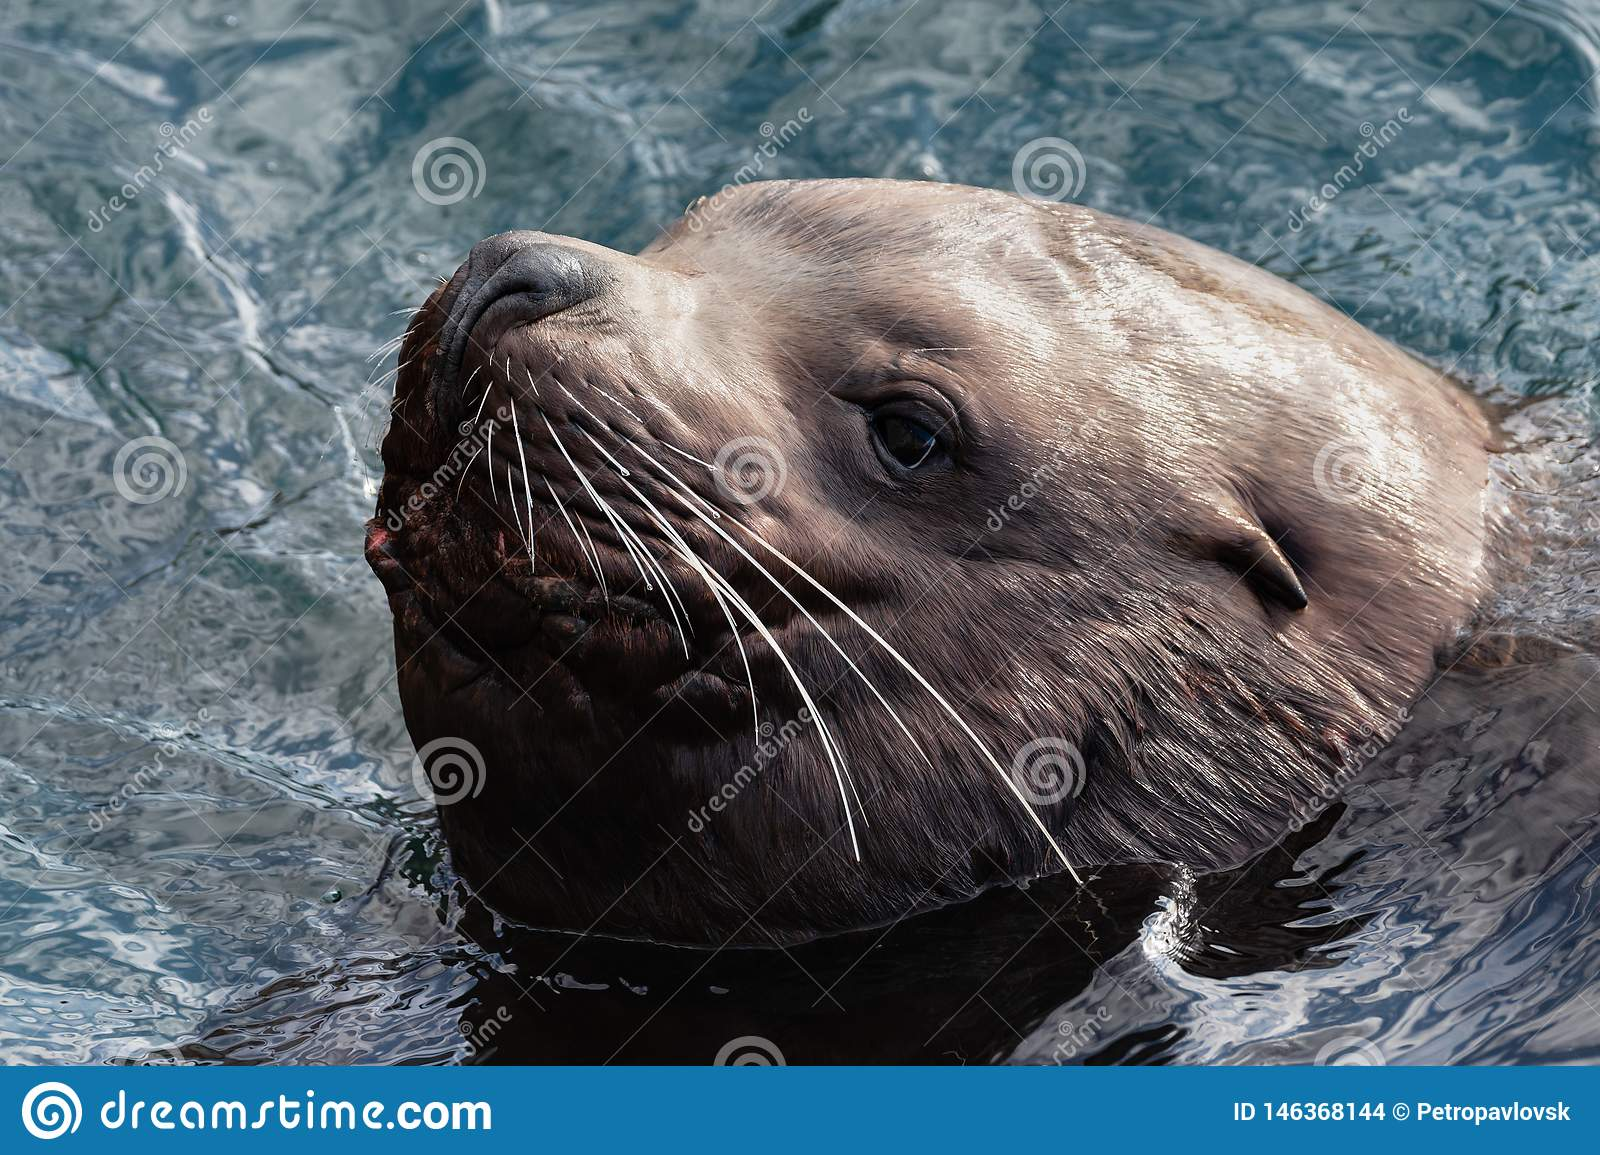 Portrait of wild sea mammal animal Northern Sea Lion swims in cold waves Pacific Ocean